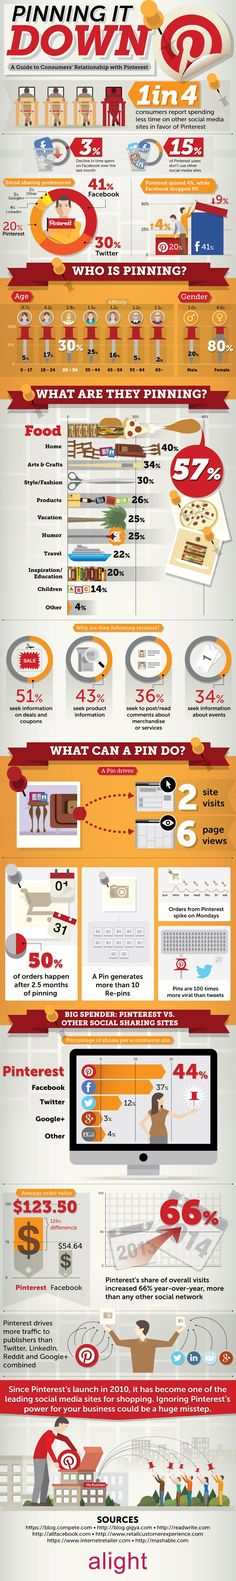 Incorporating Pinterest Into Your Marketing Strategy - infographic